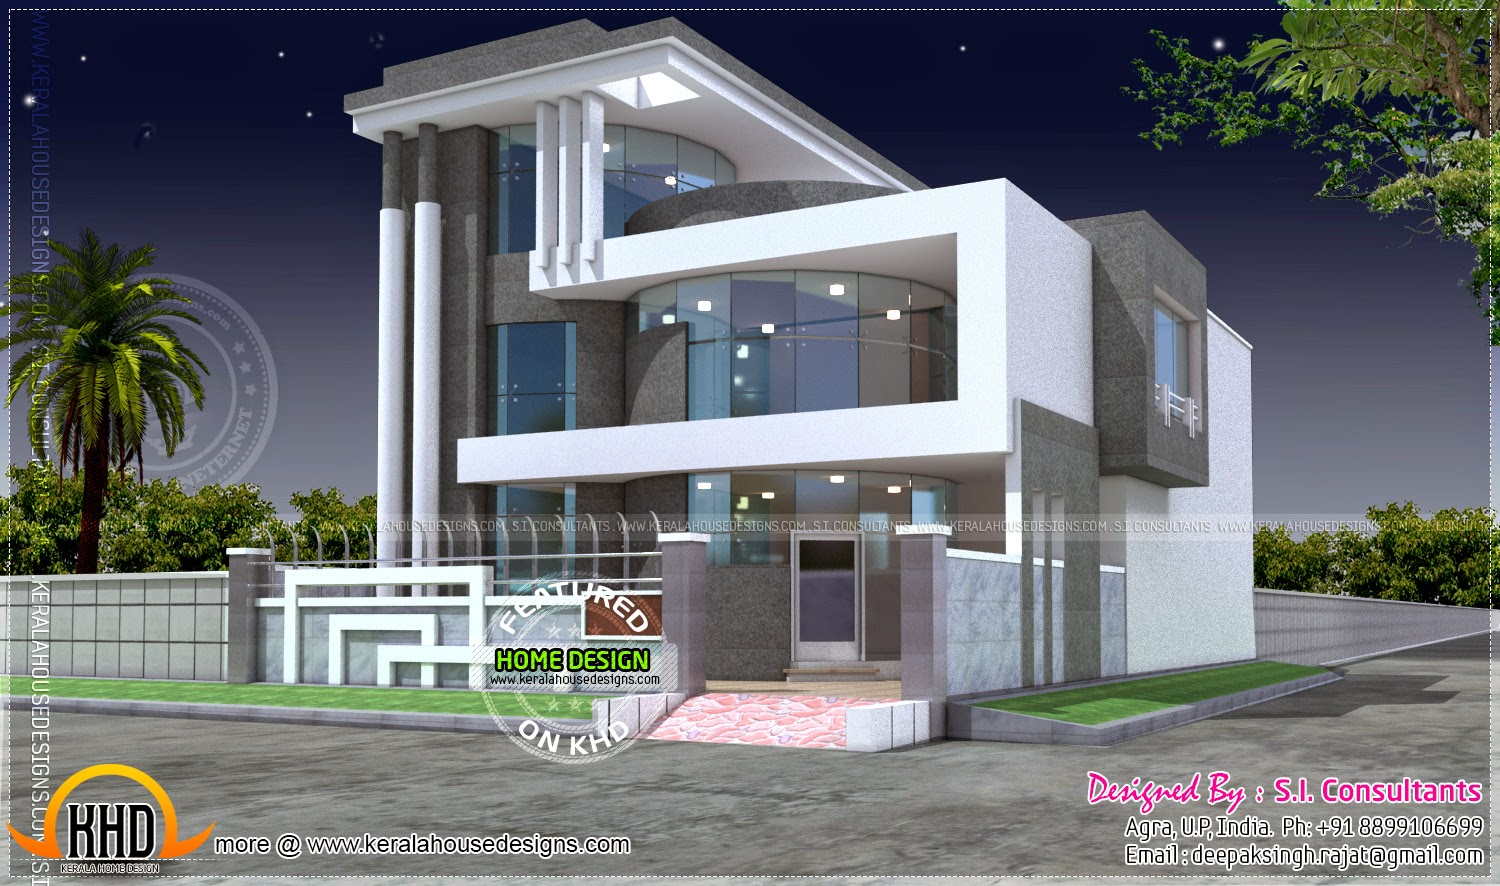 Unique luxury home design kerala home design and floor plans for Creative house designs